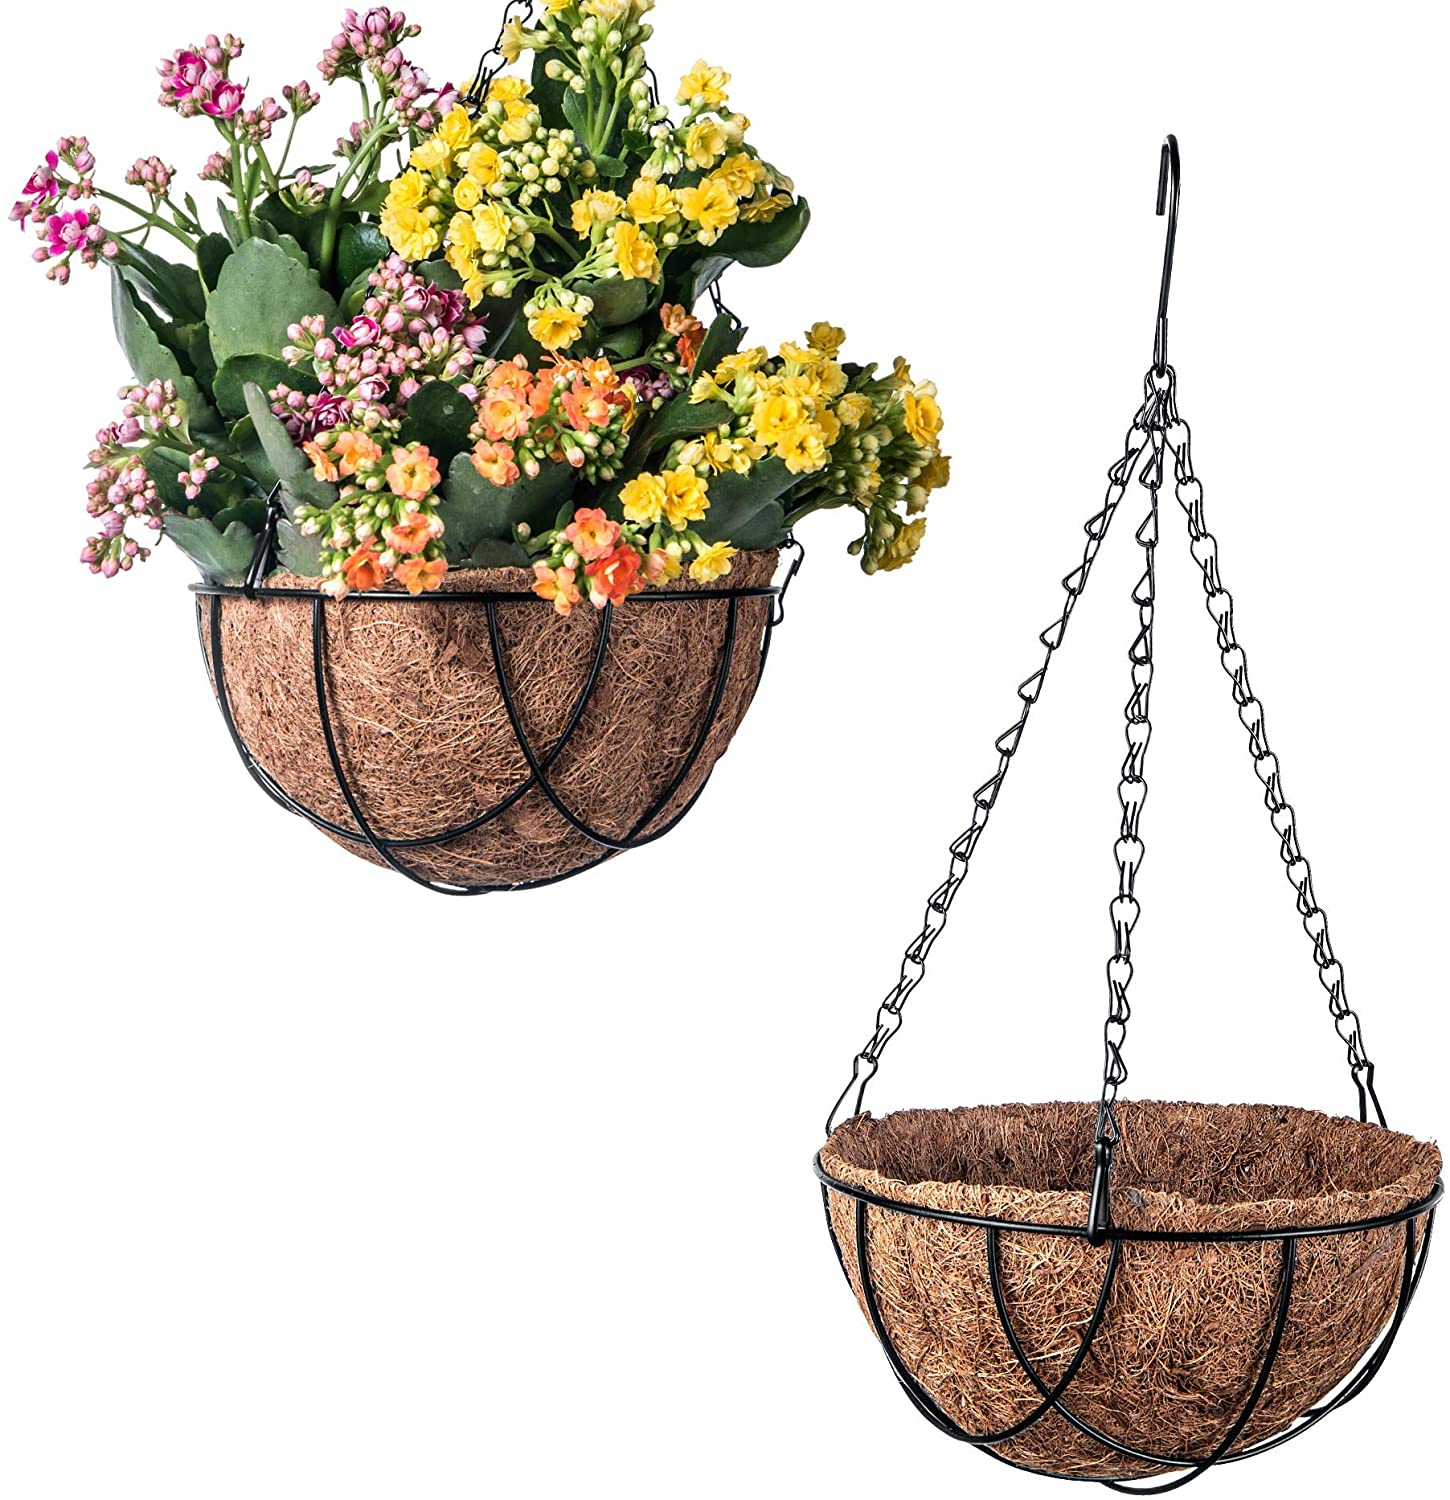 3 Pack Metal Hanging Flower Pots Hanging Planters Plant Basket with Coco Fiber Liners (10 Inch, B-Black)